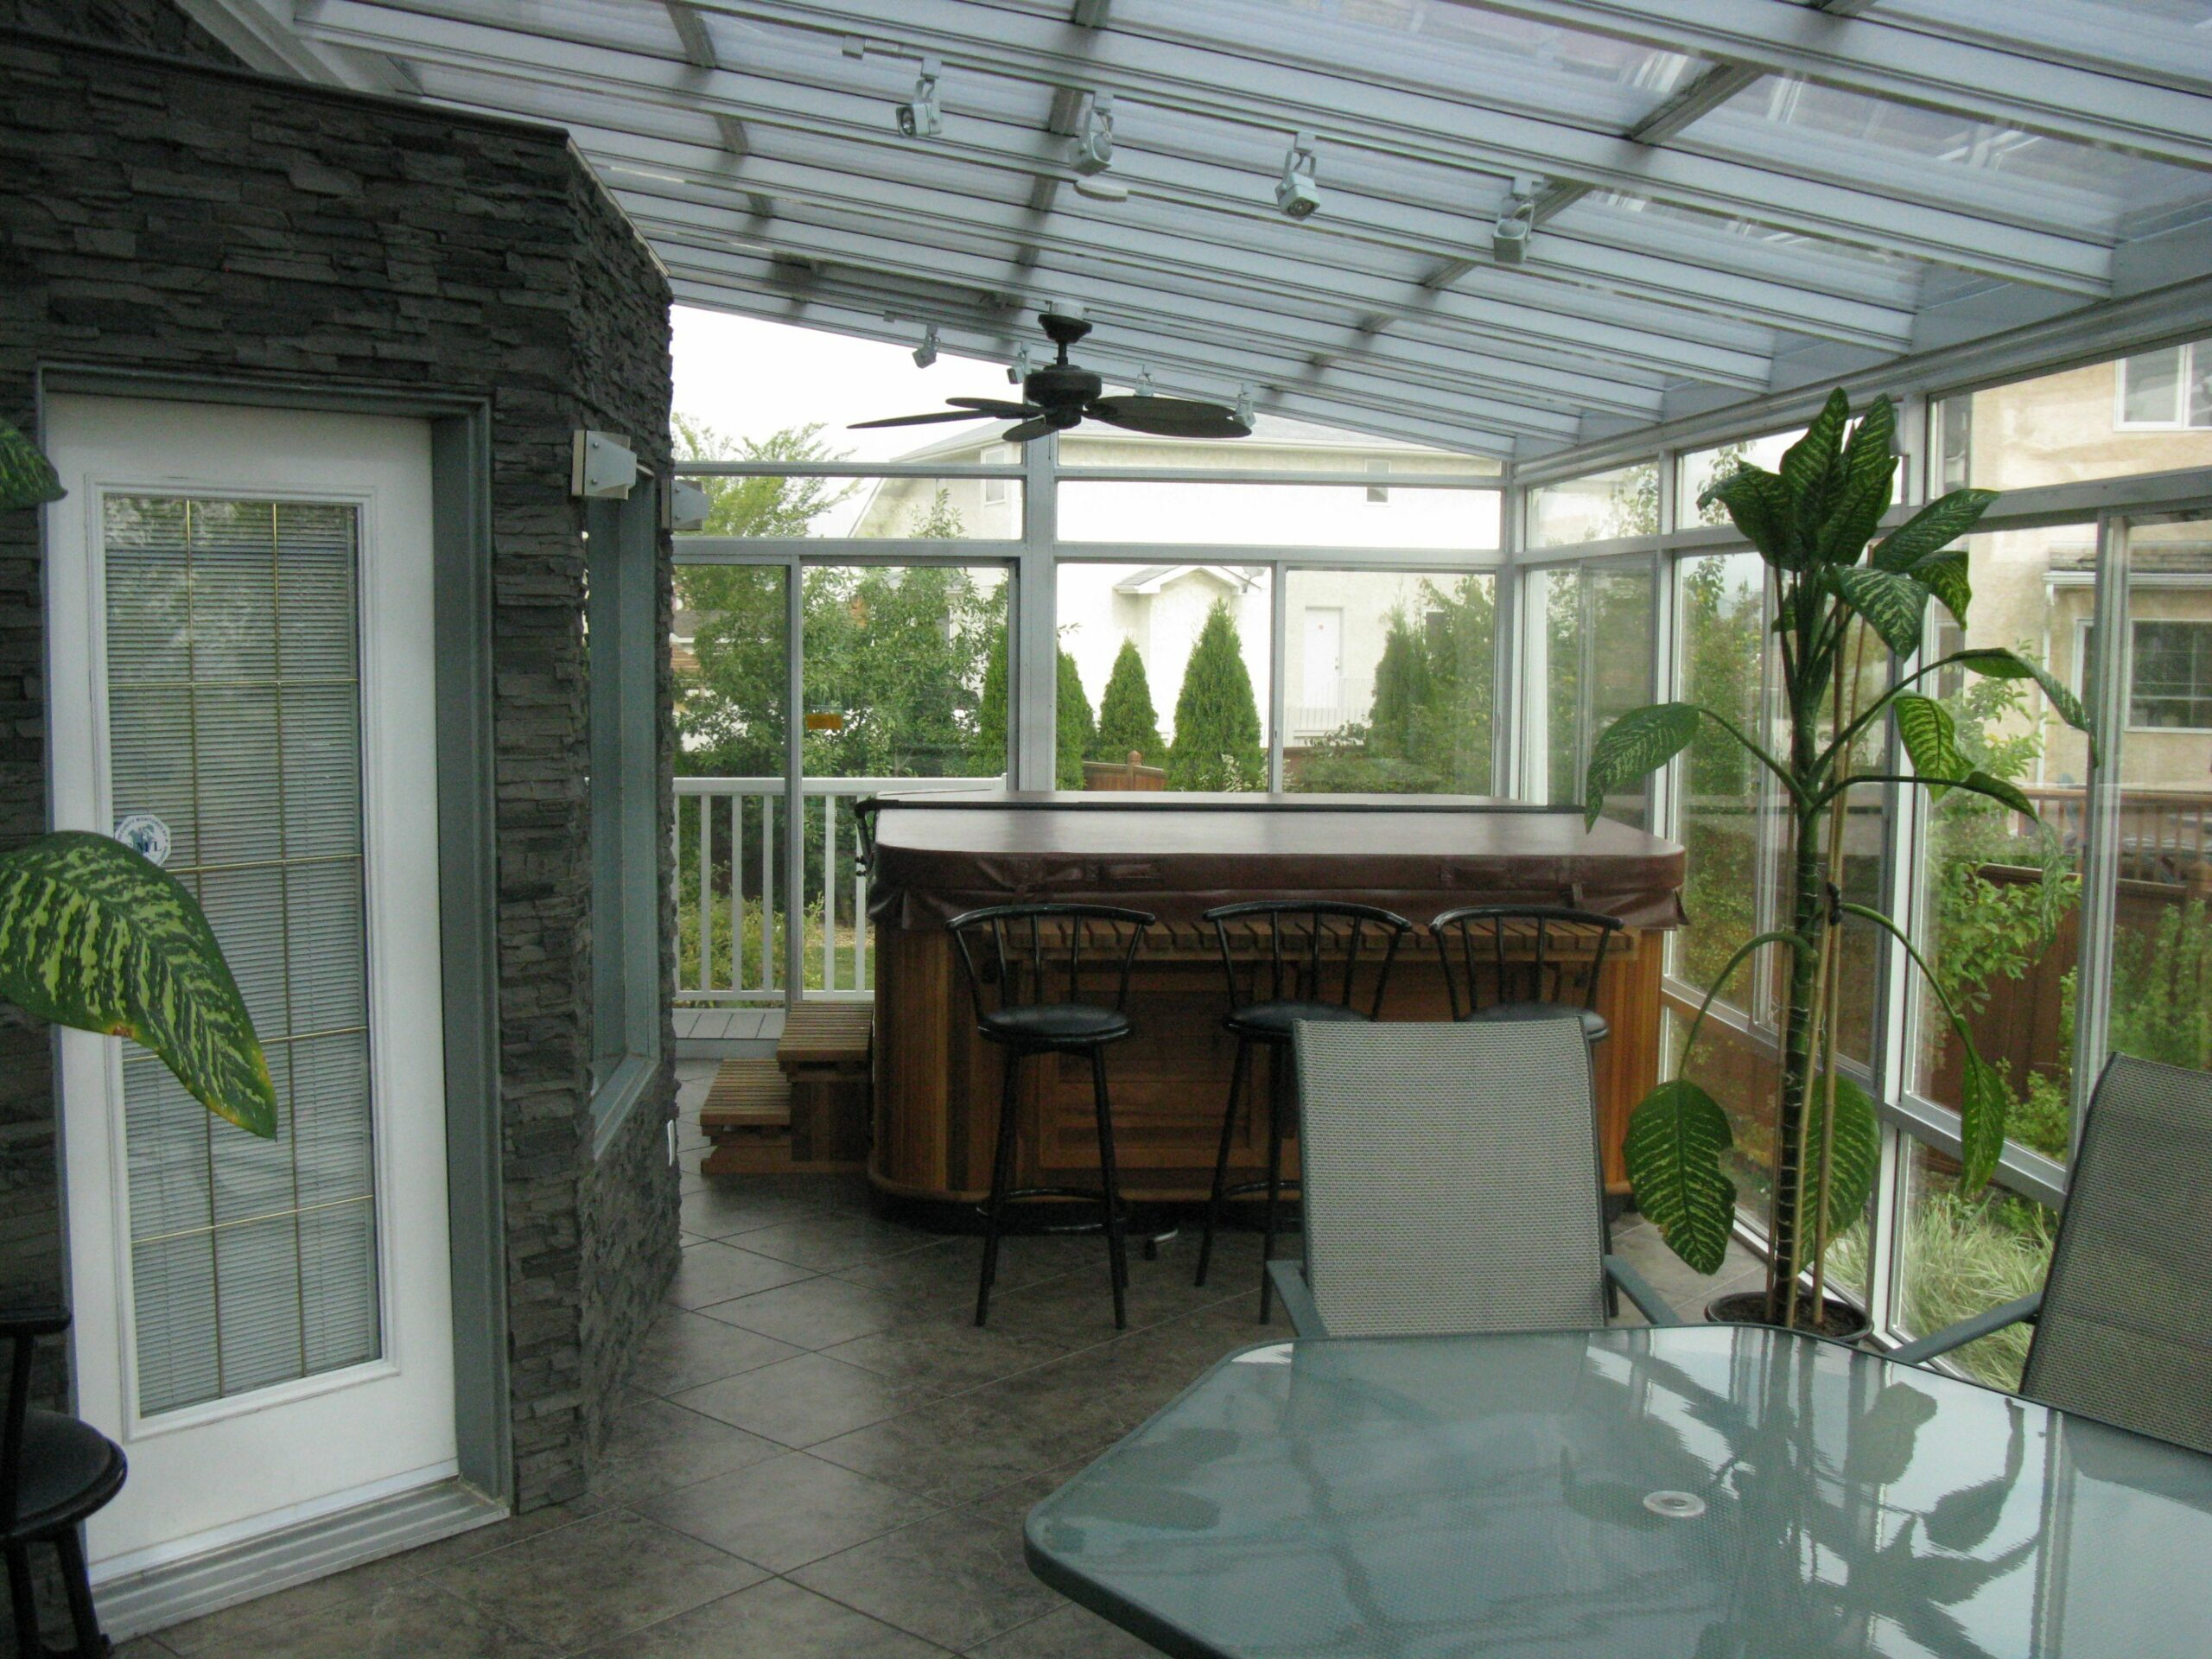 Hot tub in a sunroom is a common request. Will it heat the room ..